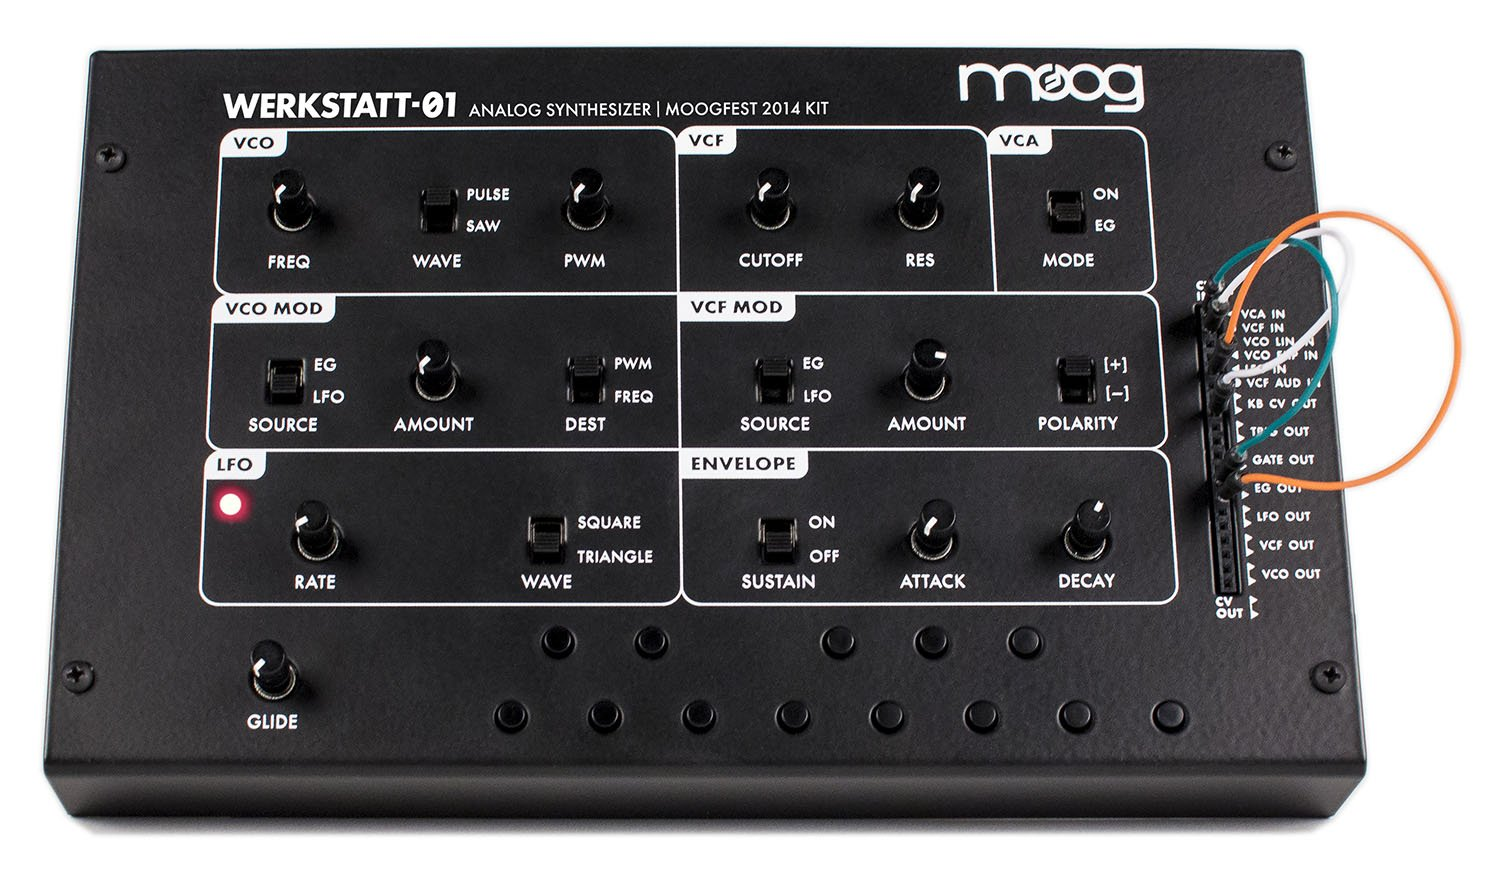 Moog Werkstatt-01 - Analog Synthesizer Kit